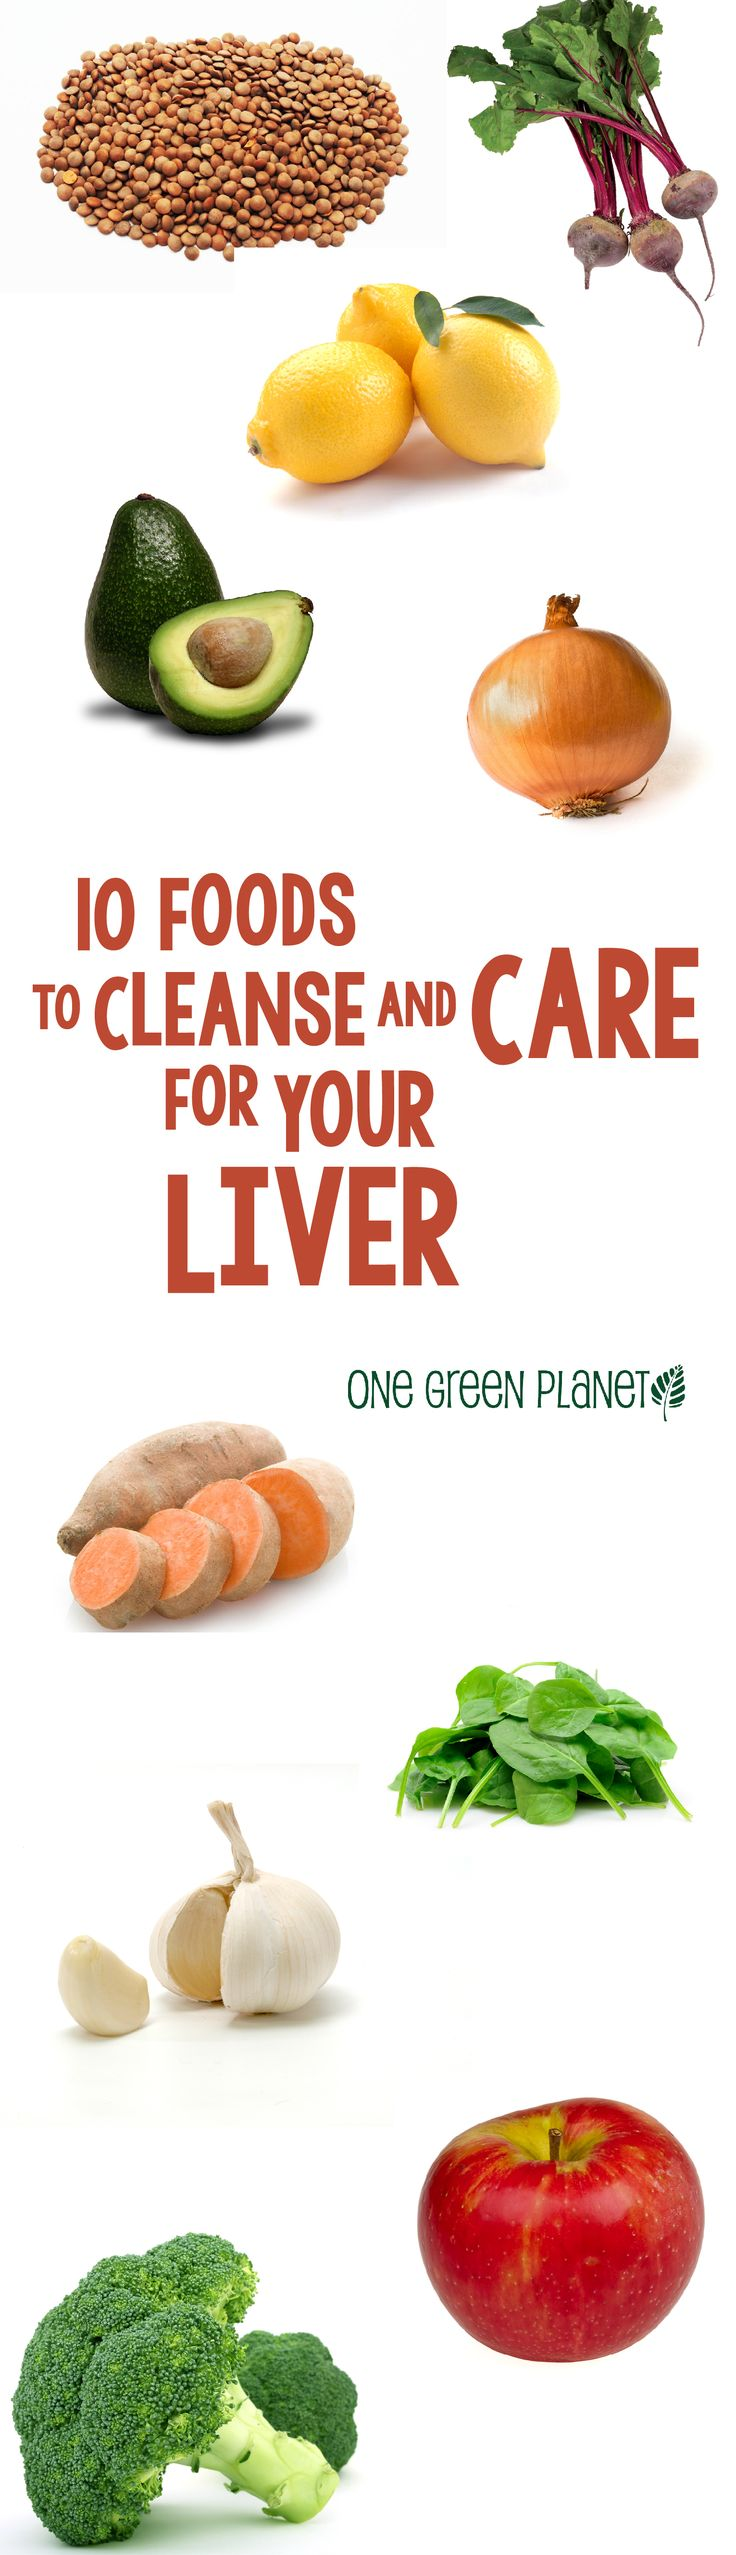 http://onegr.pl/1xkEJUe #vegan #vegetarian #foods #cleanse #care #liver #health